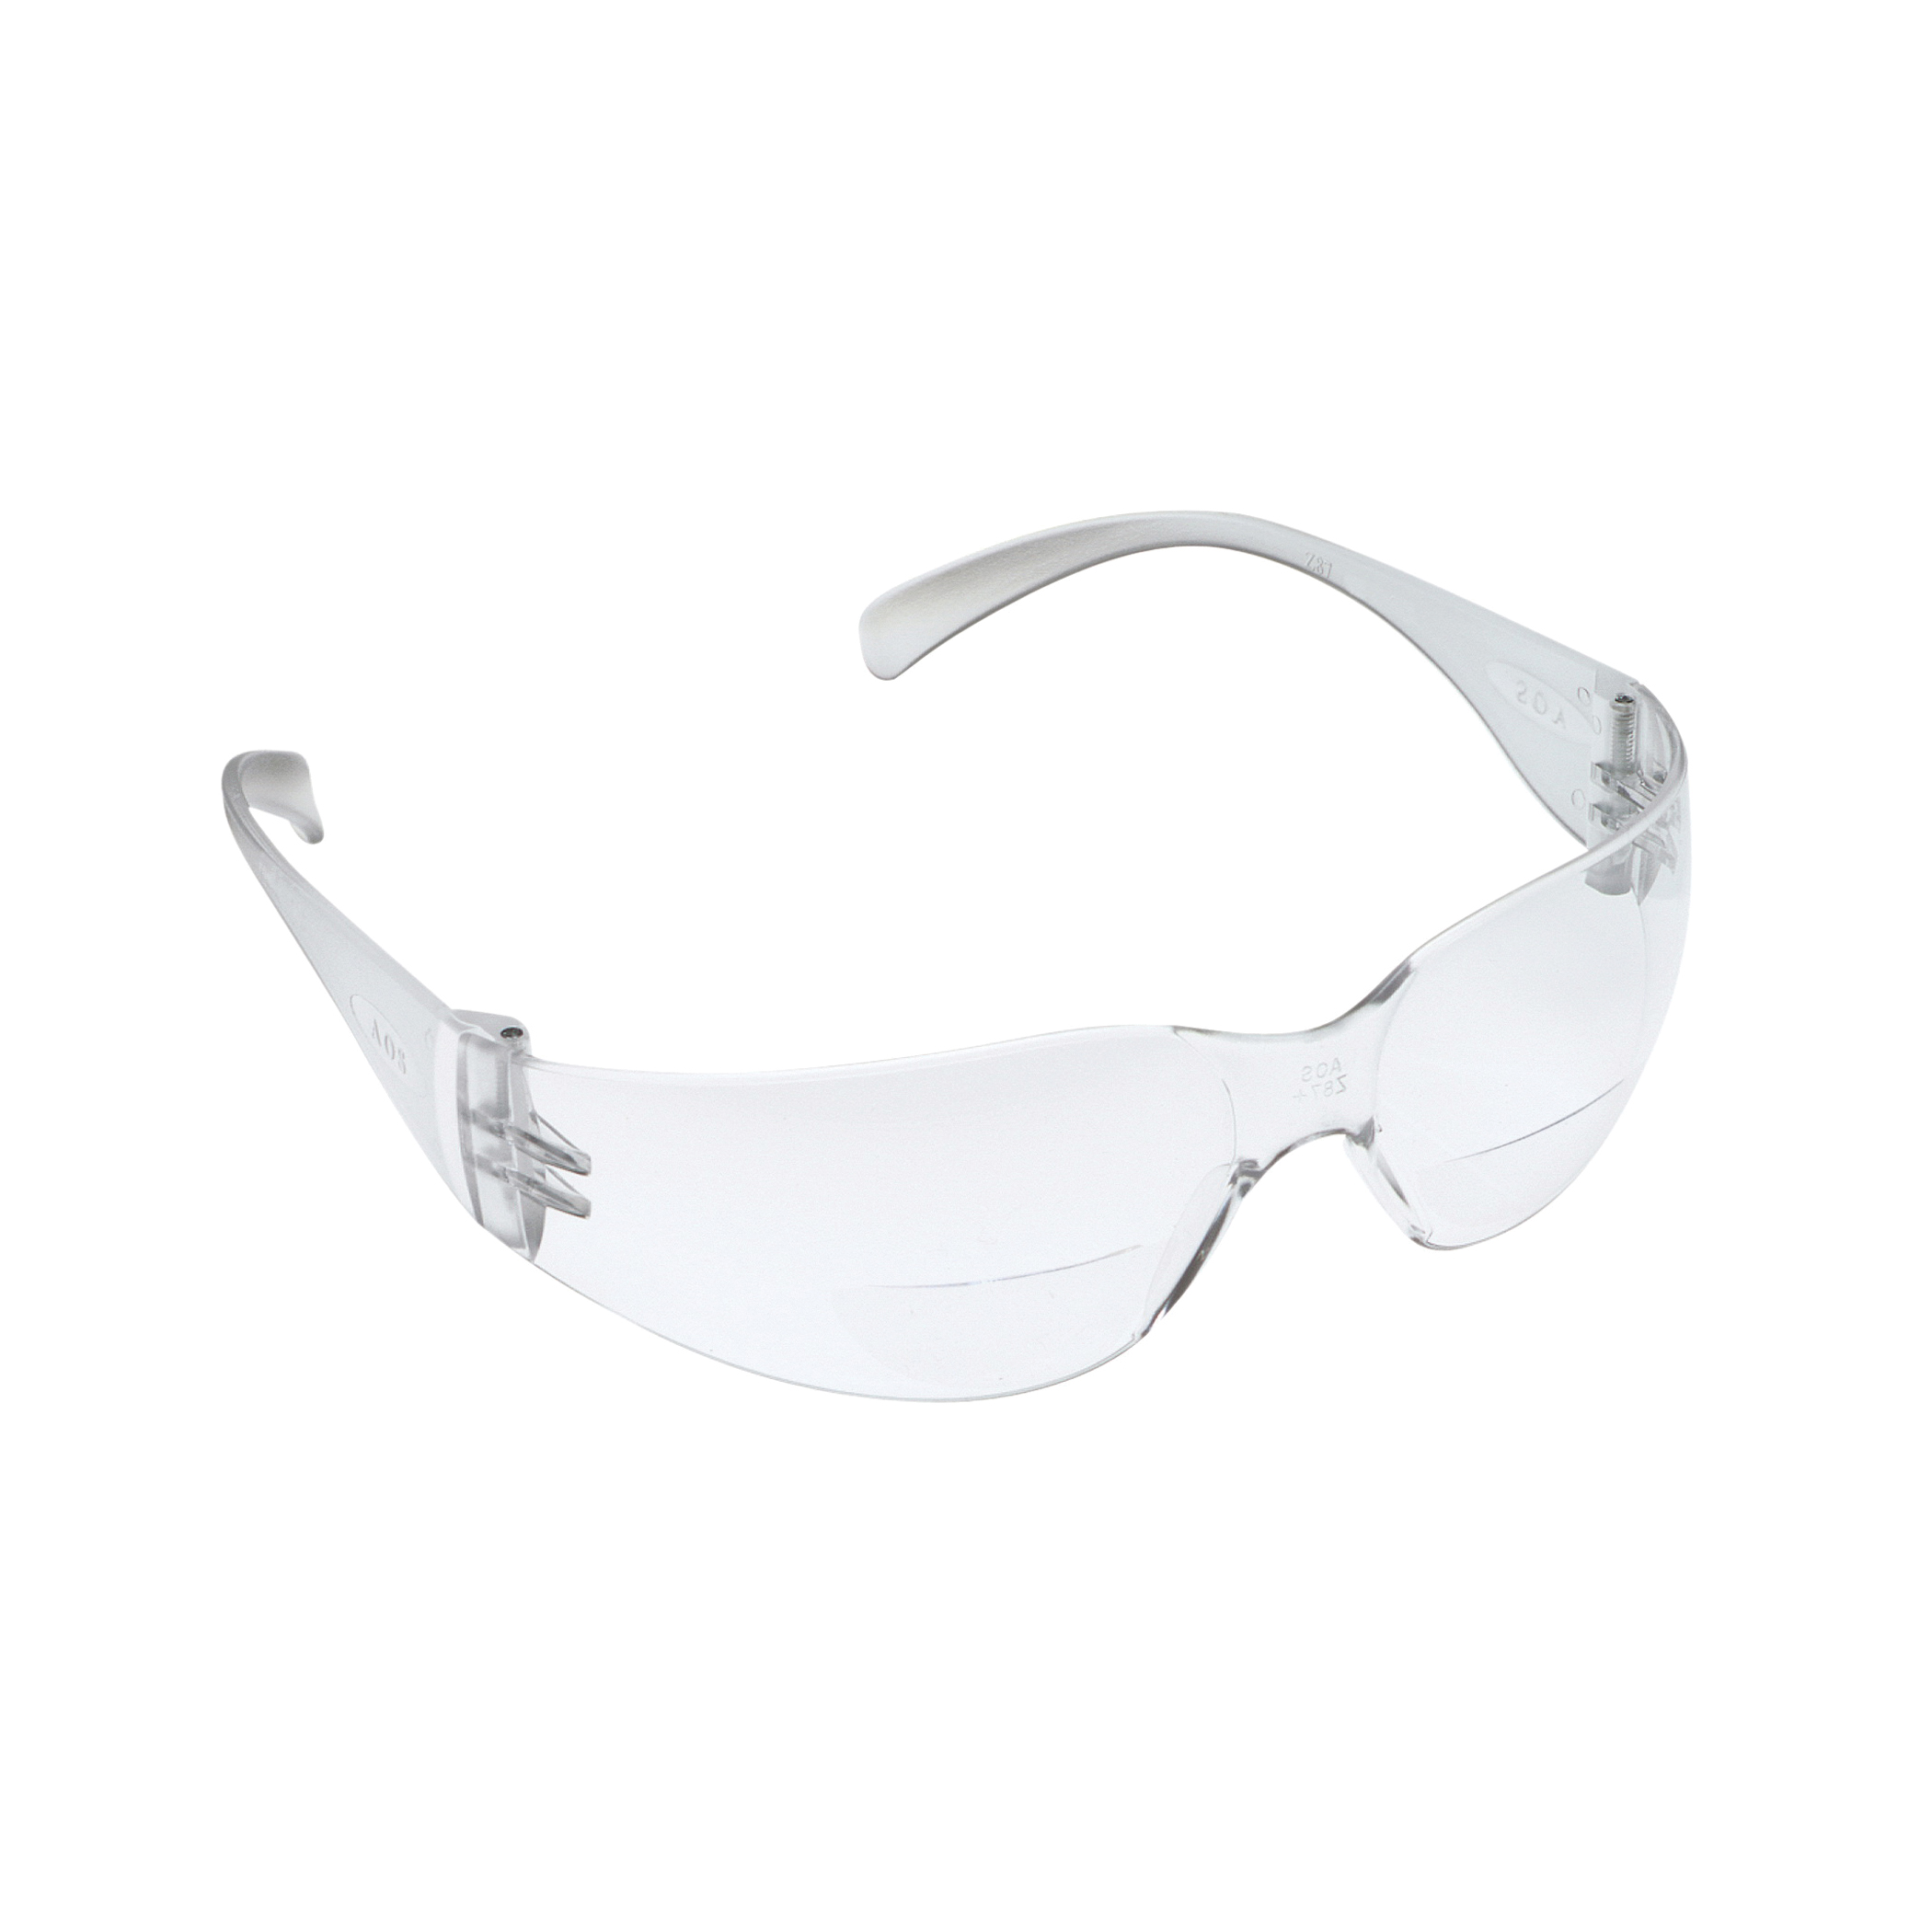 3M™ Aearo Virtua™ 078371-62120 11514-00000-20 Bi-Focal Lens Economy Lightweight Reader Protective Eyewear, 2 Diopter, Clear Lens, Clear Plastic Frame, Polycarbonate Lens, 99.9% UV Protection, Specifications Met: ANSI Z87.1-2015